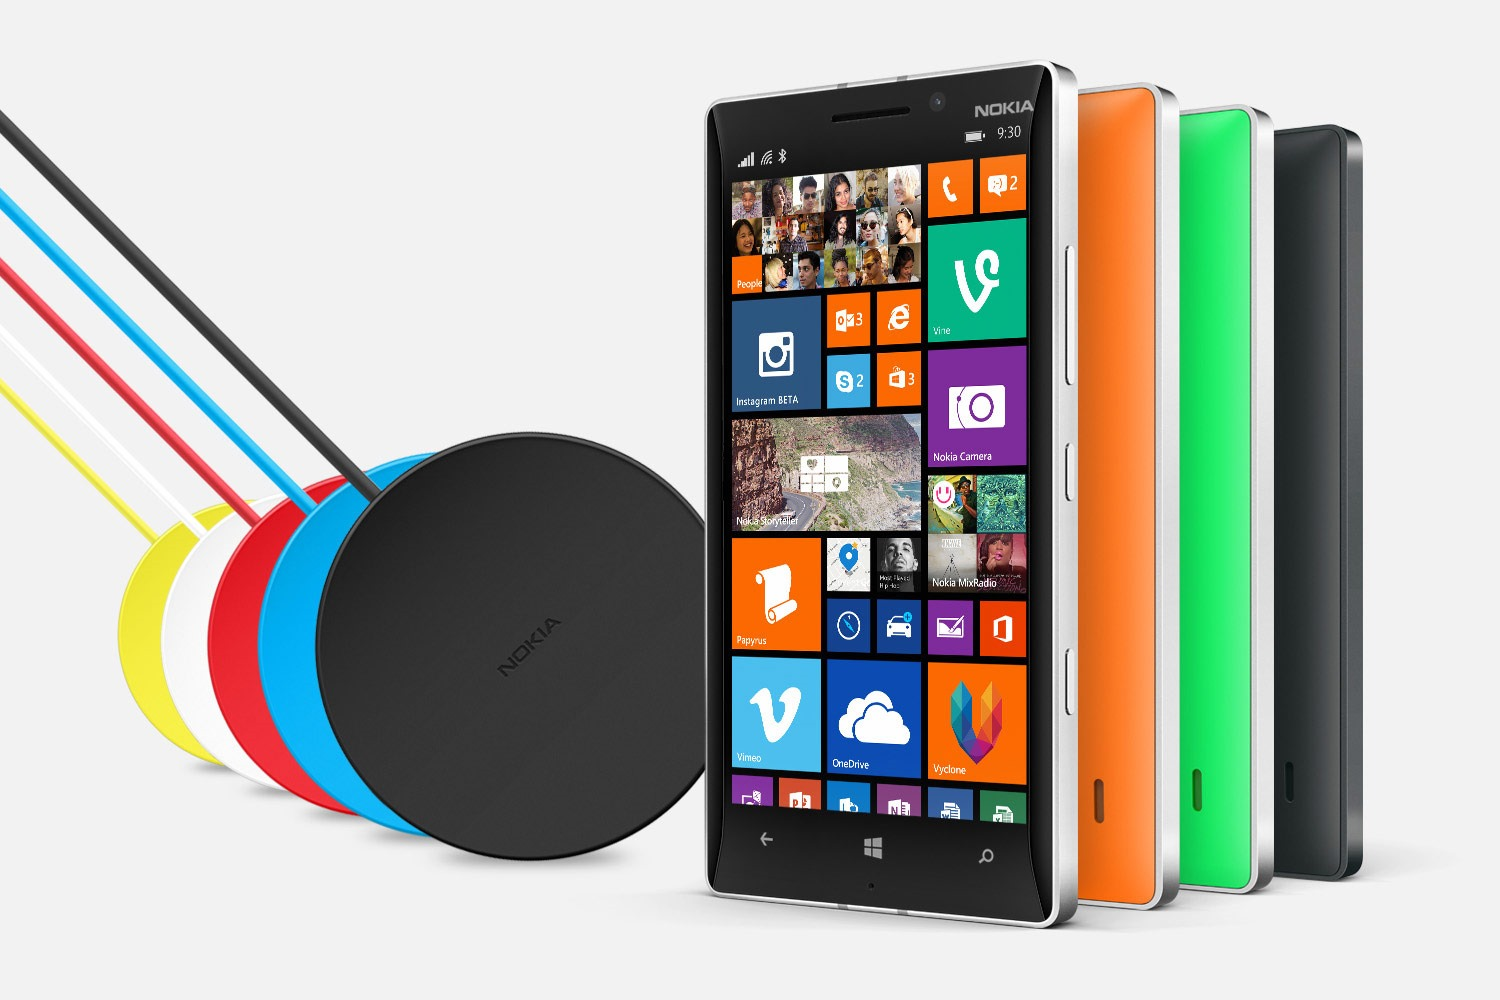 Nokia-Lumia-930-and-wireless-chargers